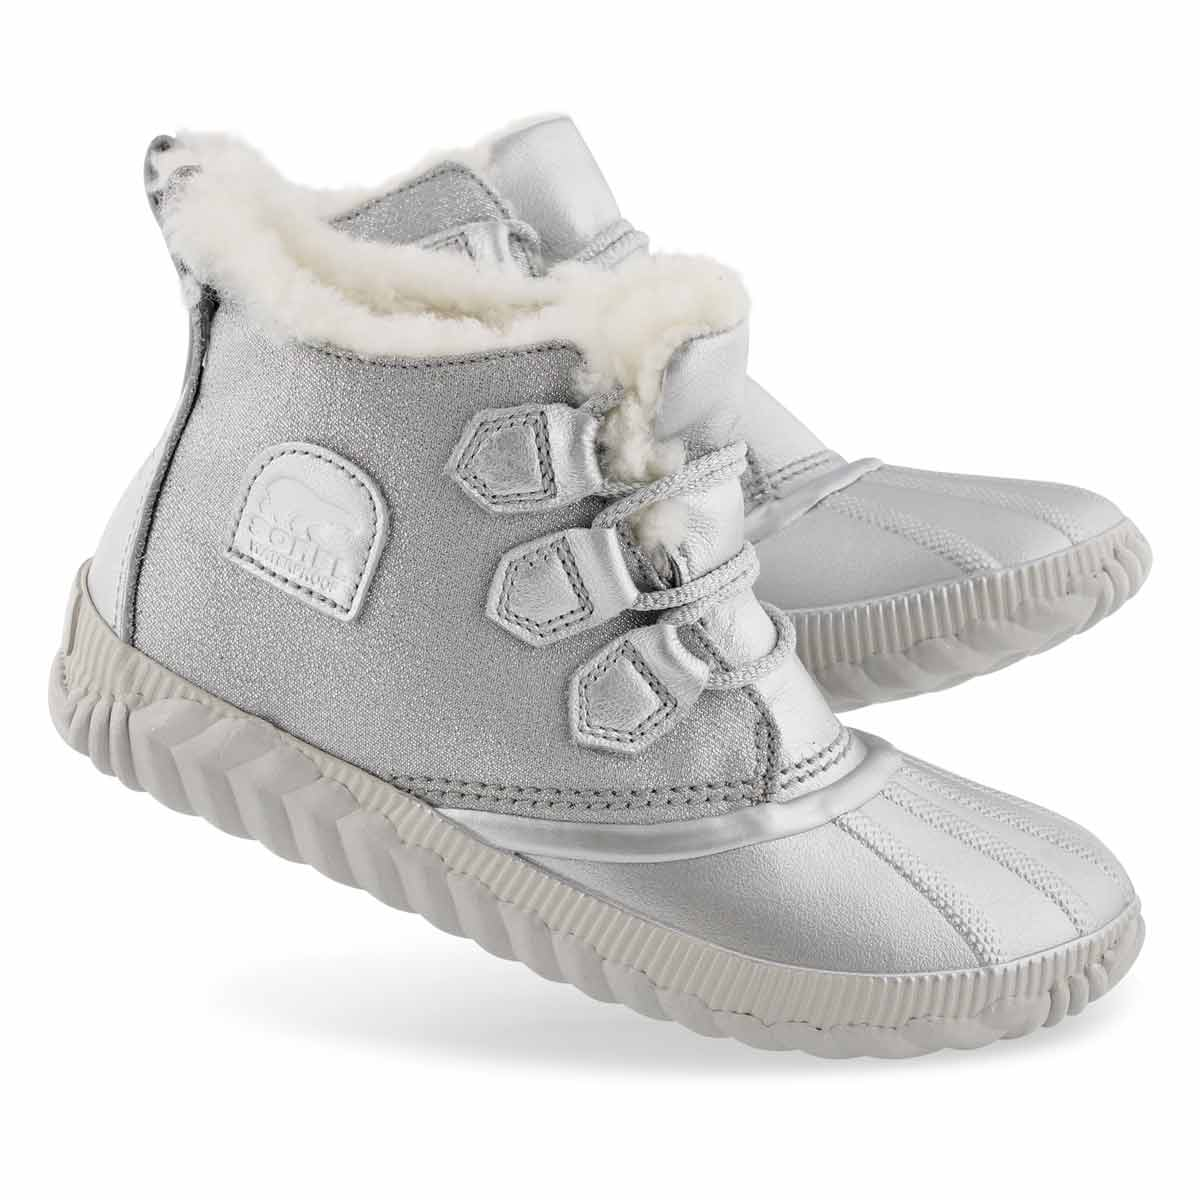 Lds Disney OutNAboutFrozen sil wtpf boot